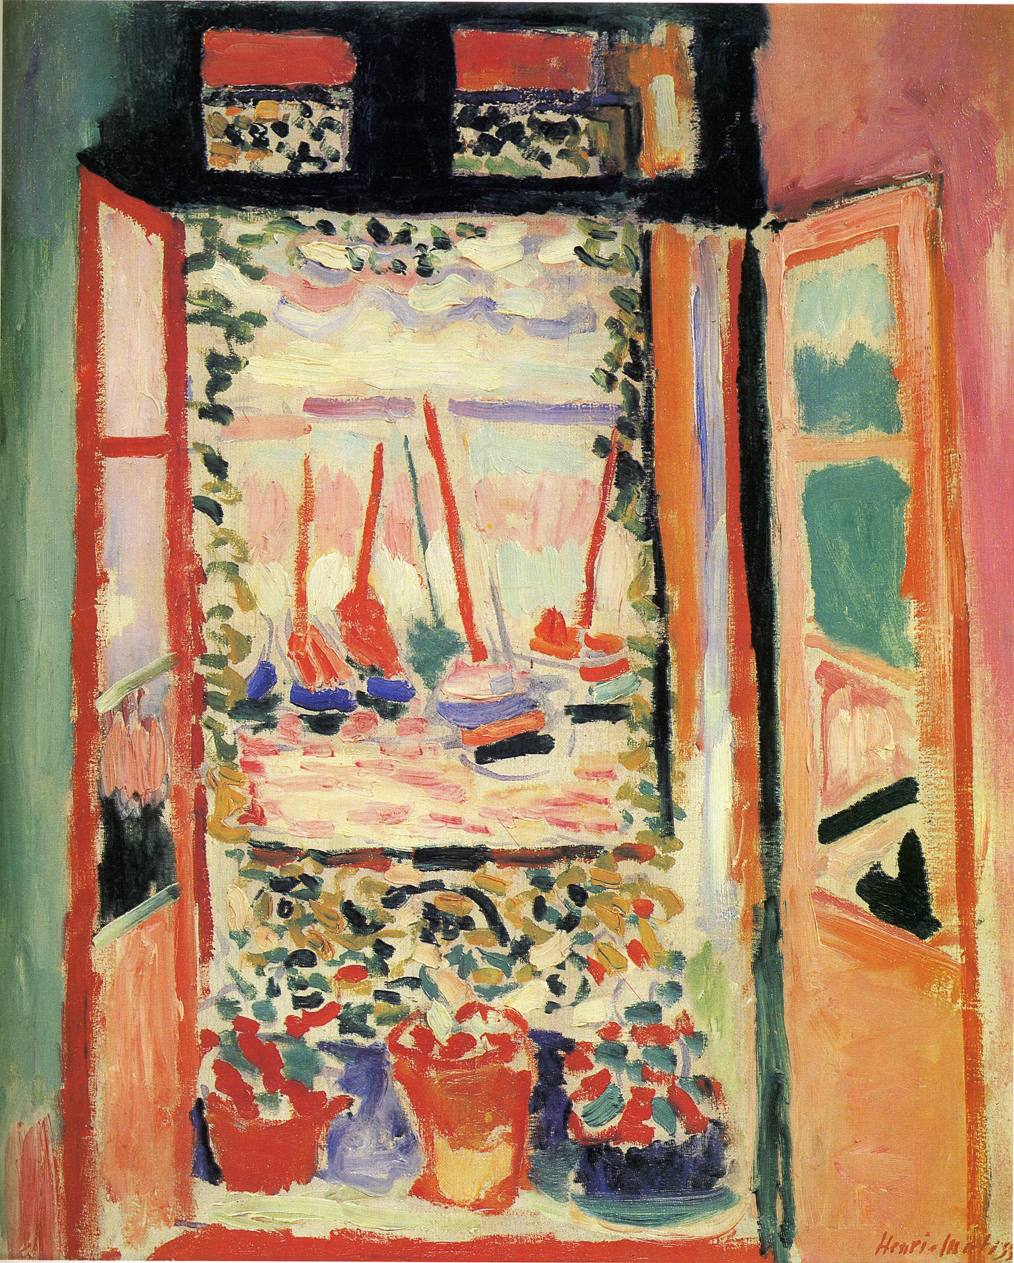 Henri matisse 1869 1954 the open window 1905 fauves andre